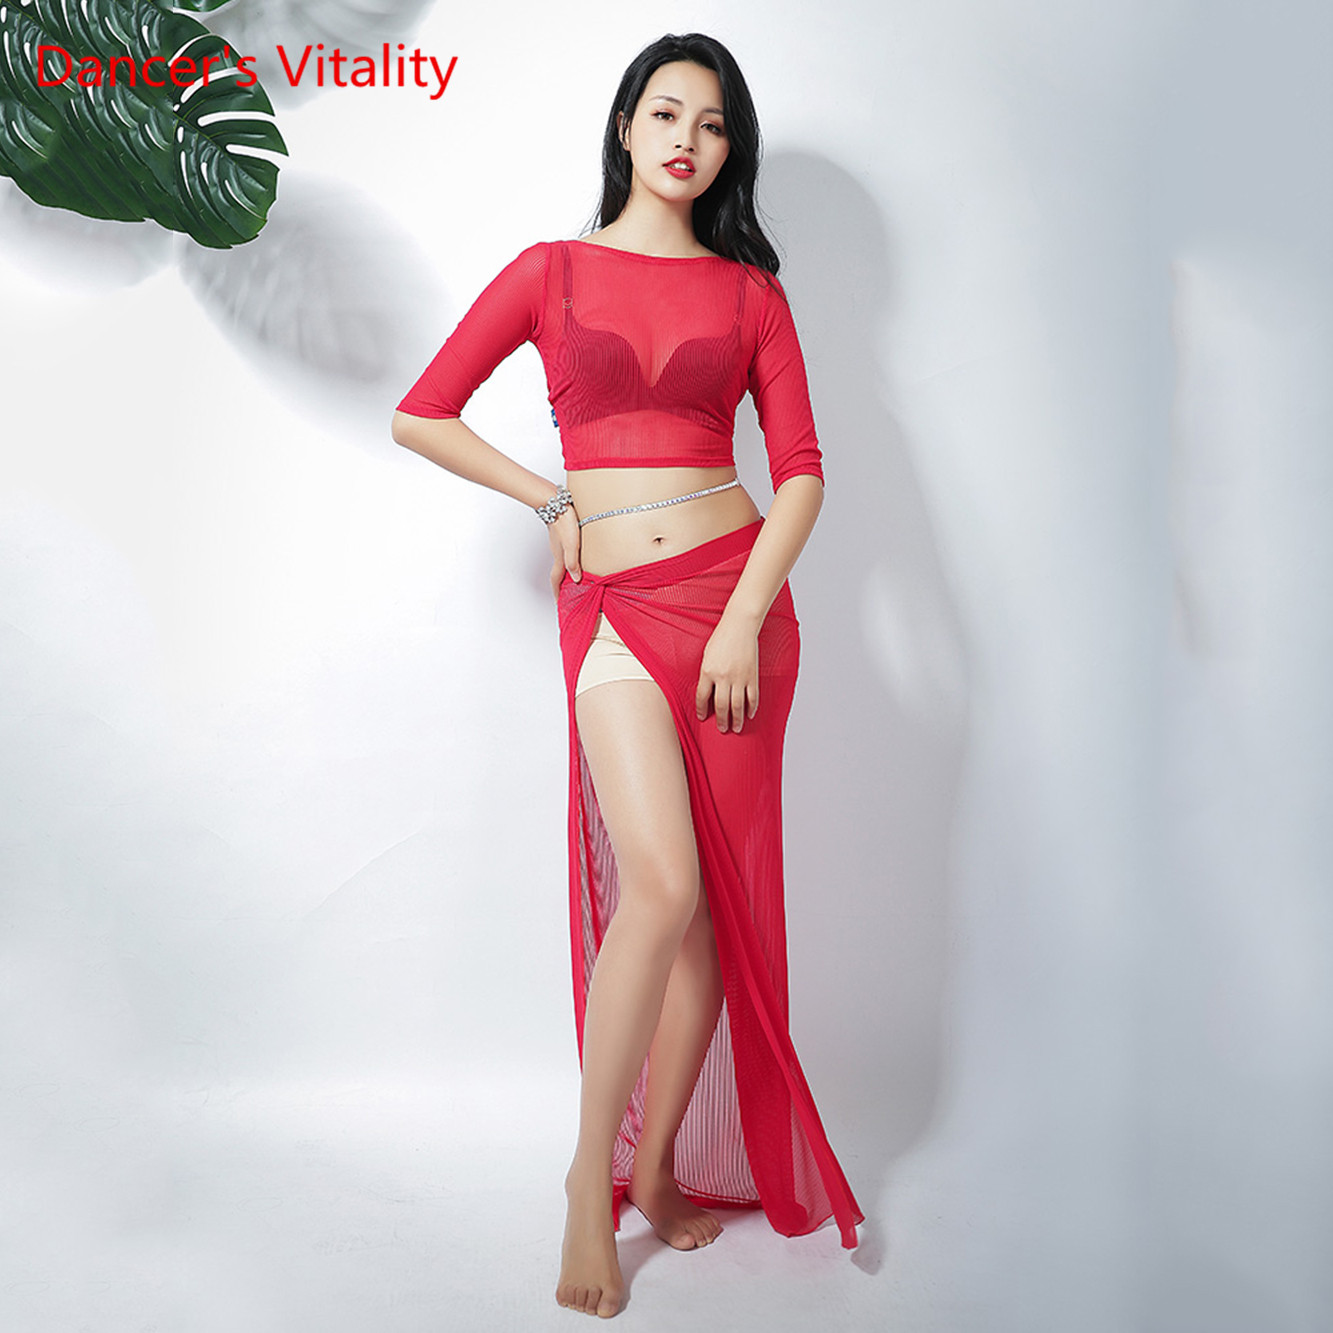 Summer New Nelly Dance Costume Oriental Dance Costumes Belly Dance Practice Clothes Top+Skirt 2pcs